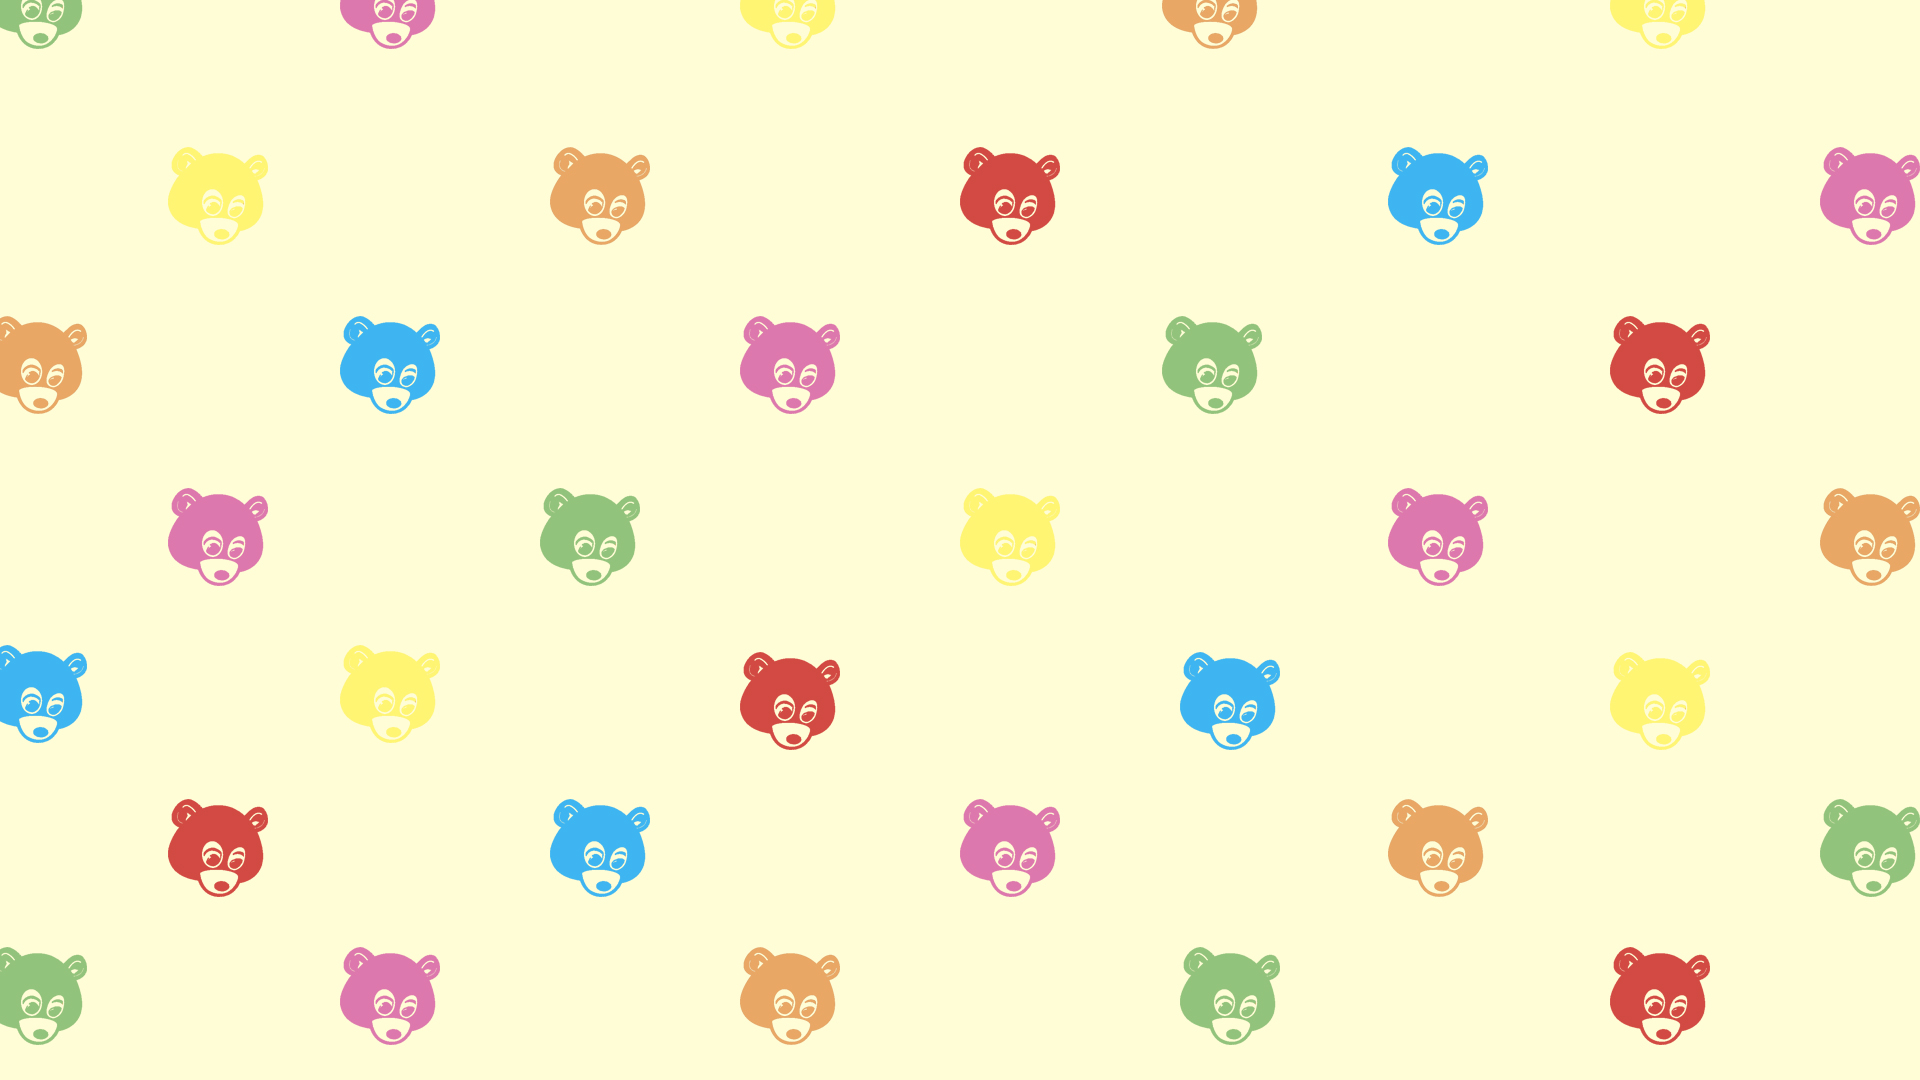 Kanye West Bear Wallpapers Page 2 Kanye West Forum